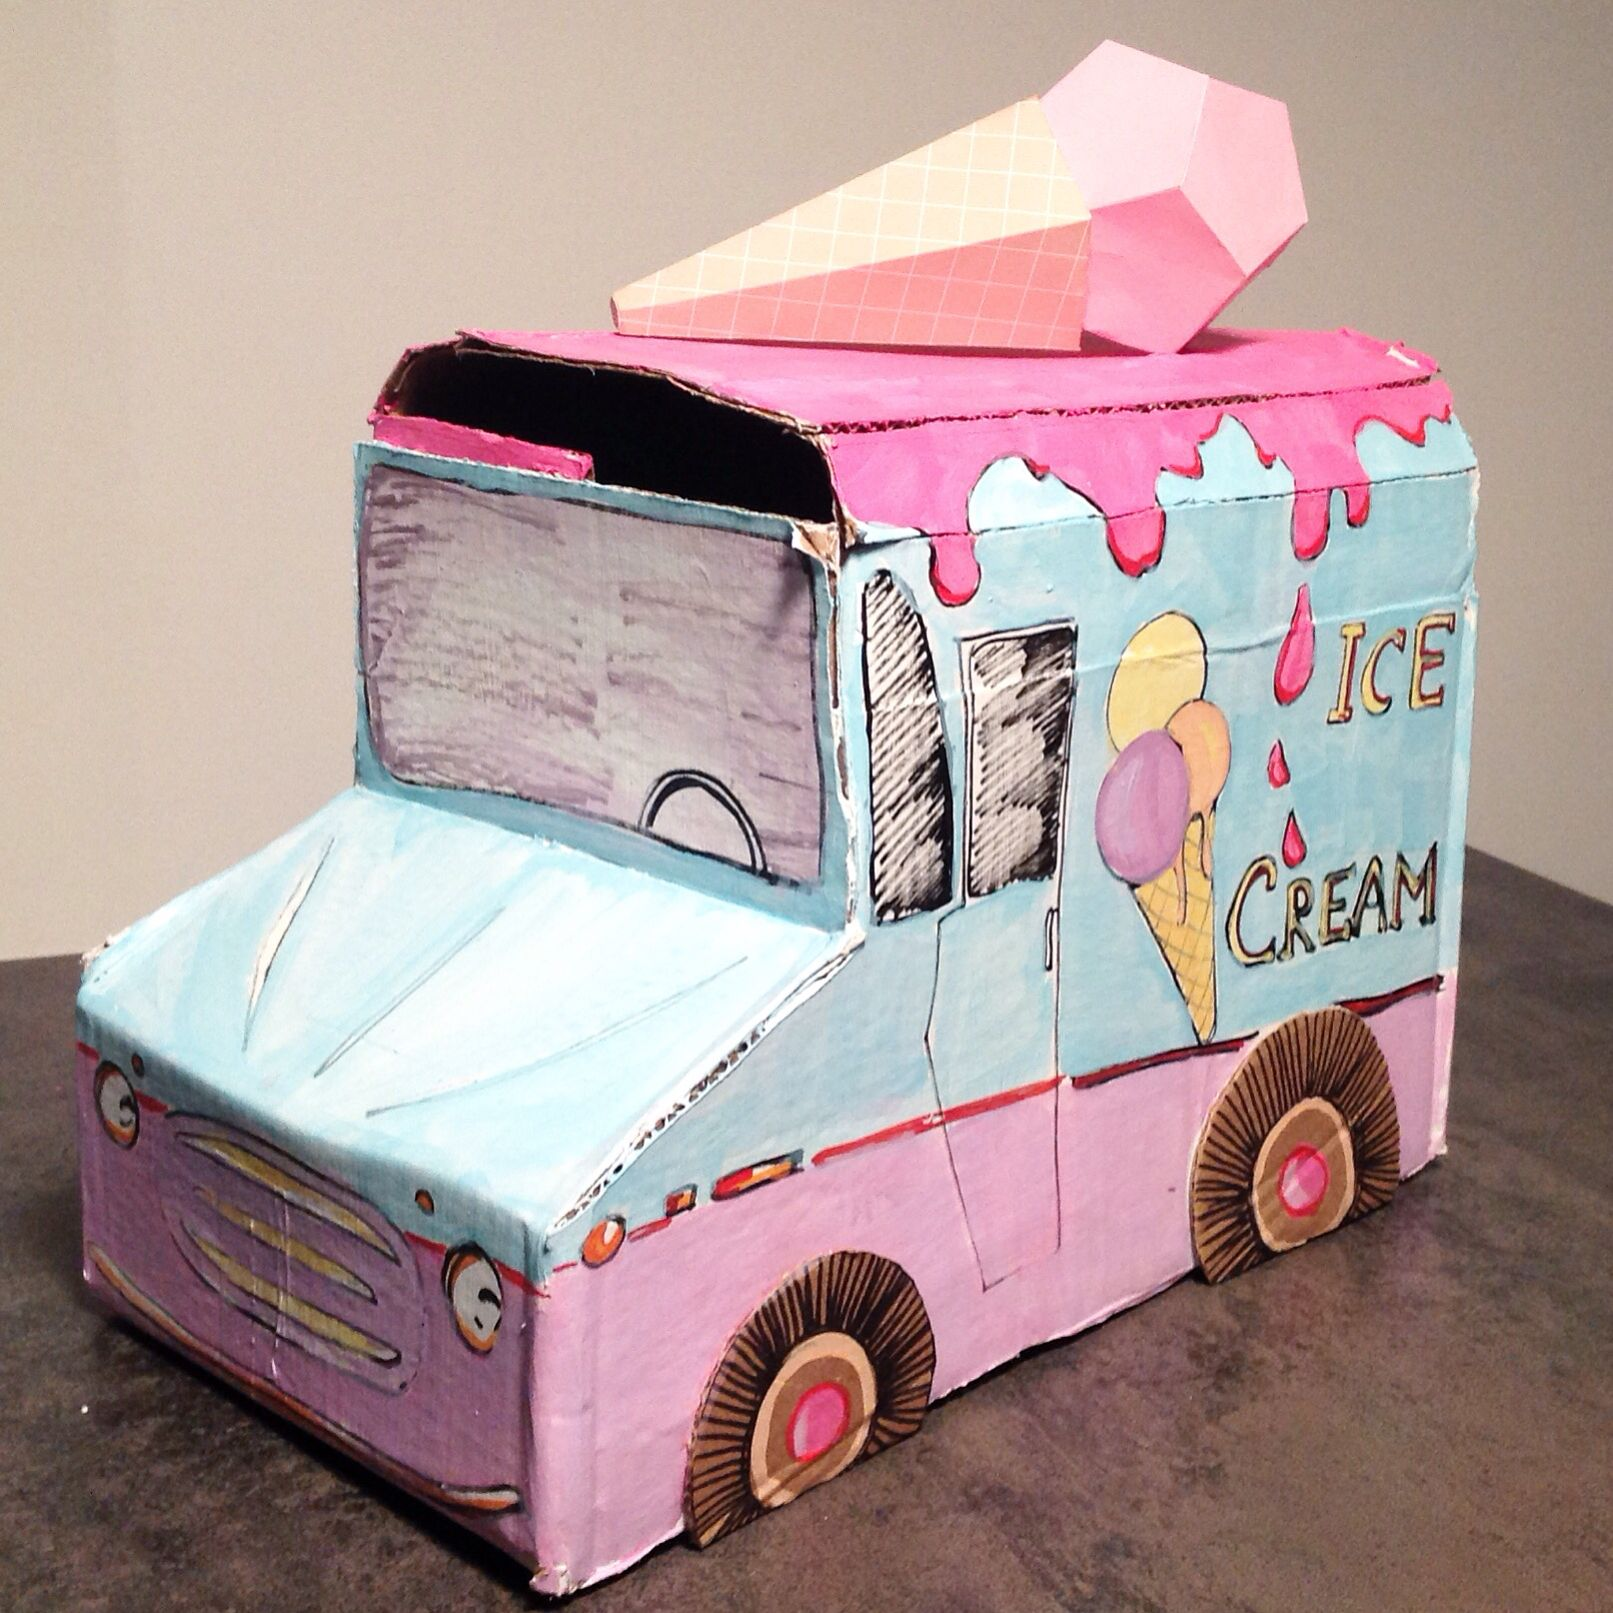 Cardboard ice cream truck for cars themed birthday party